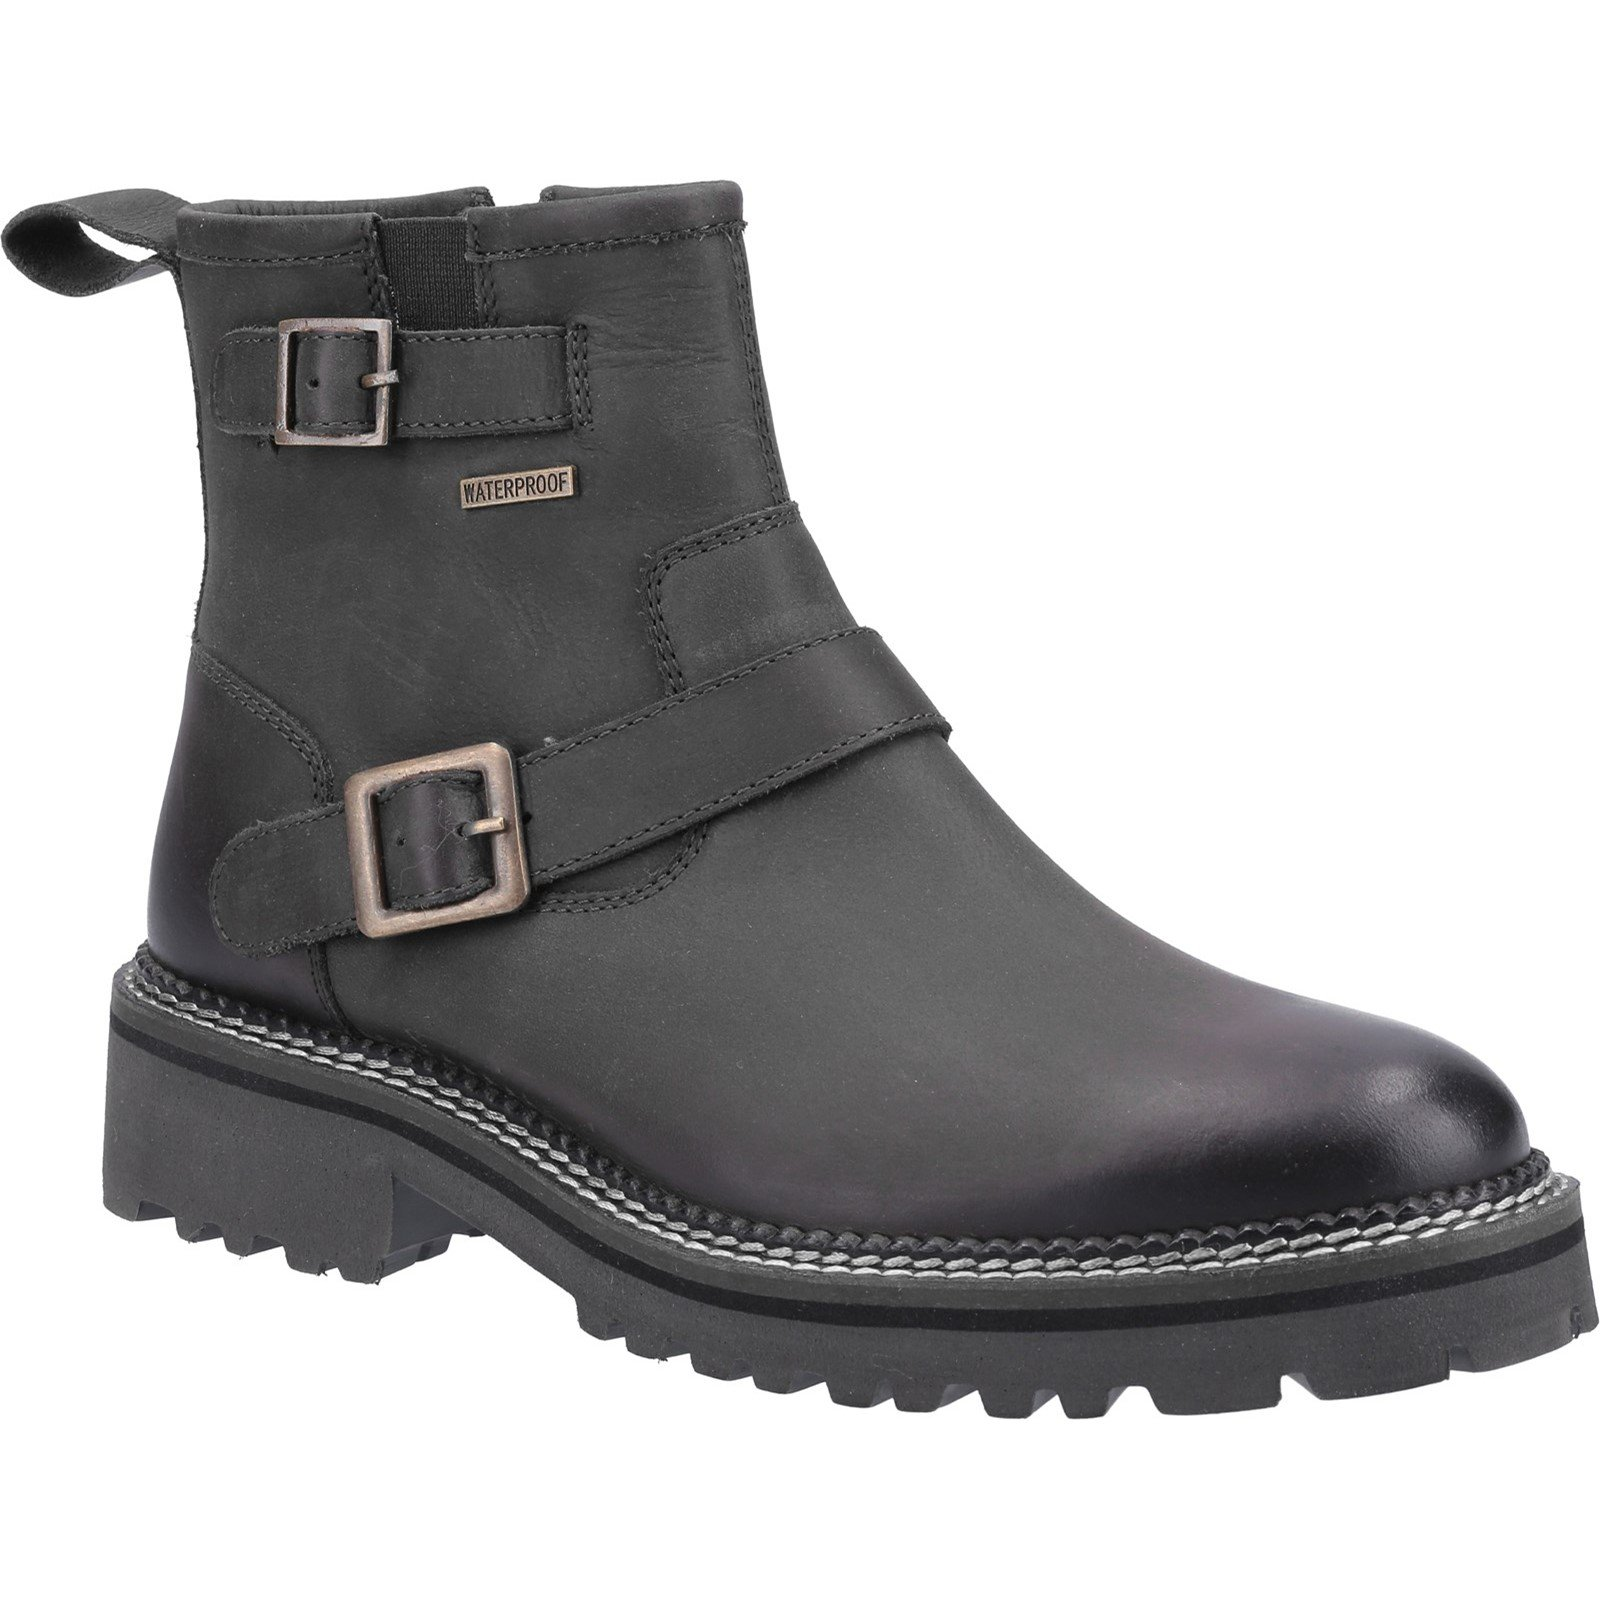 Cotswold Women's Combe Zip Ankle Boot Black 32975 - Black 3